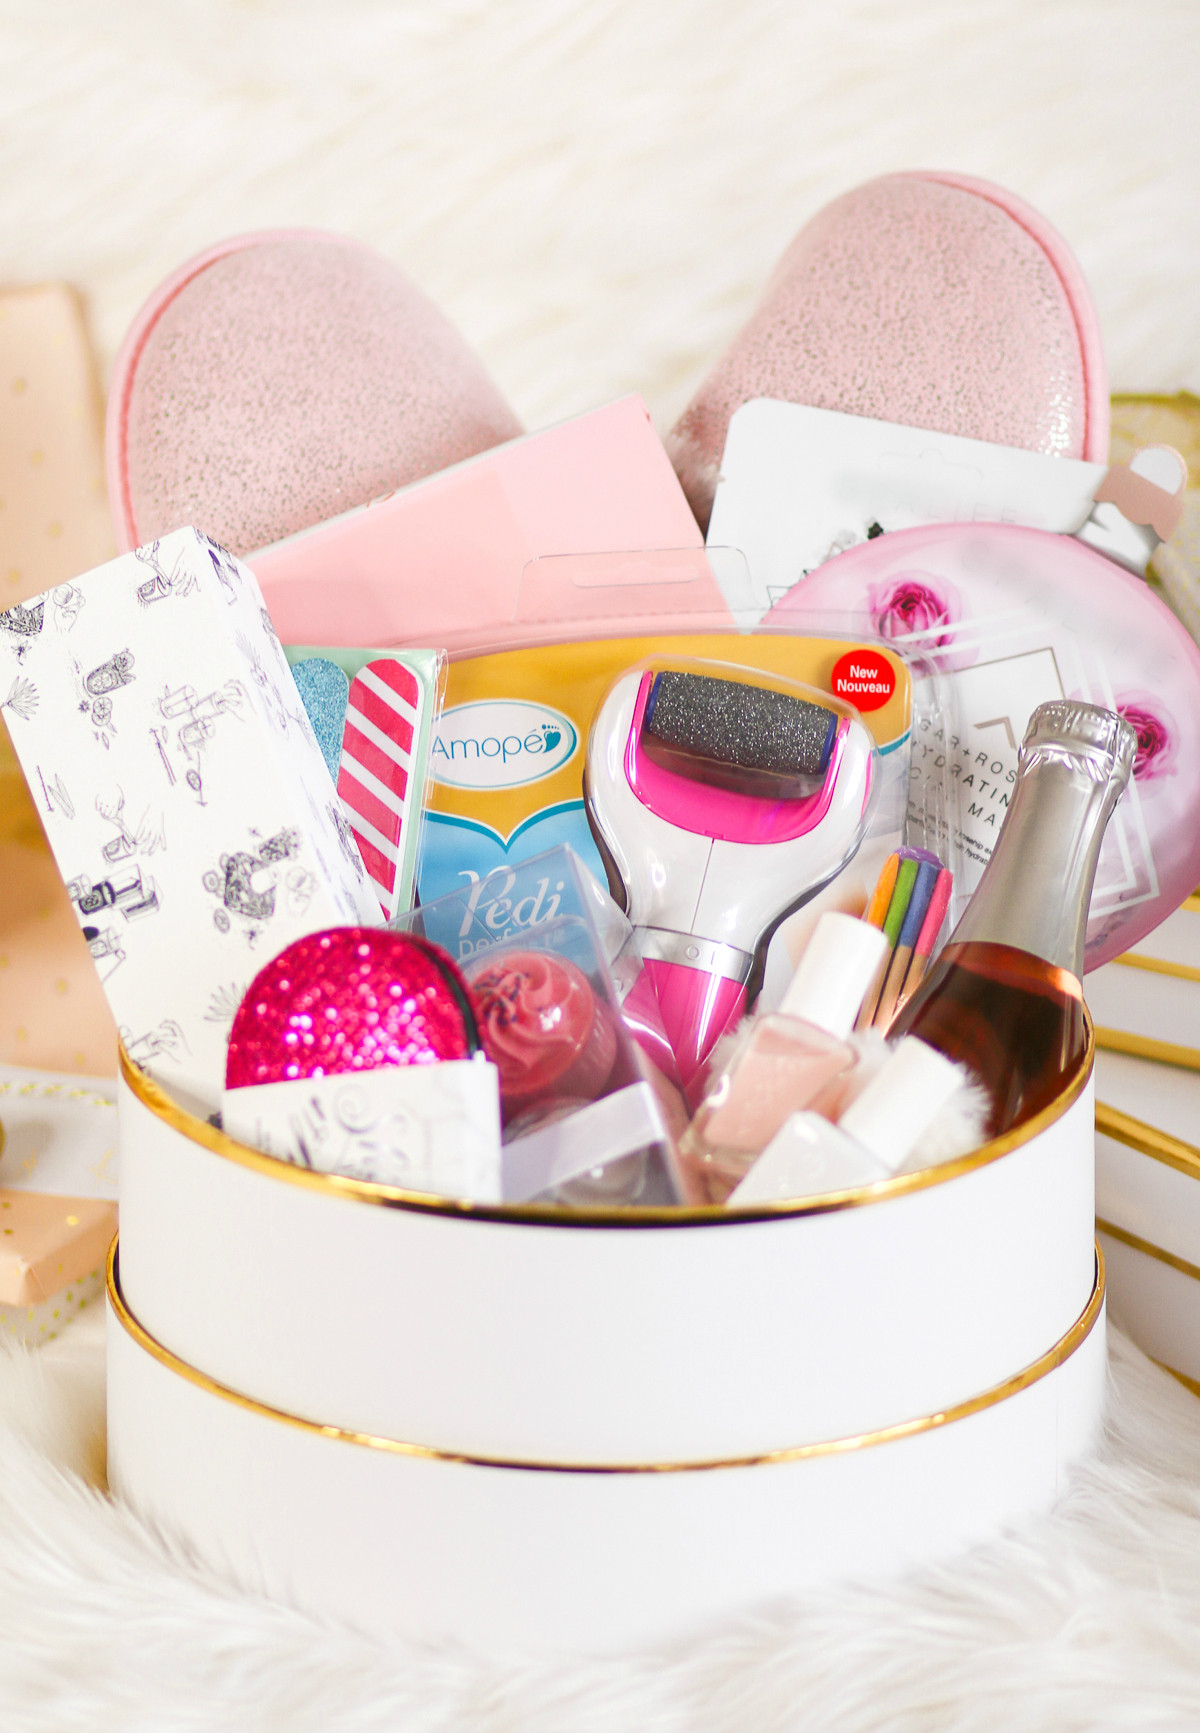 Best ideas about Diy Gift Basket Ideas For Her . Save or Pin DIY Self Care Gift Basket A Collection of 12 Awesome Self Now.